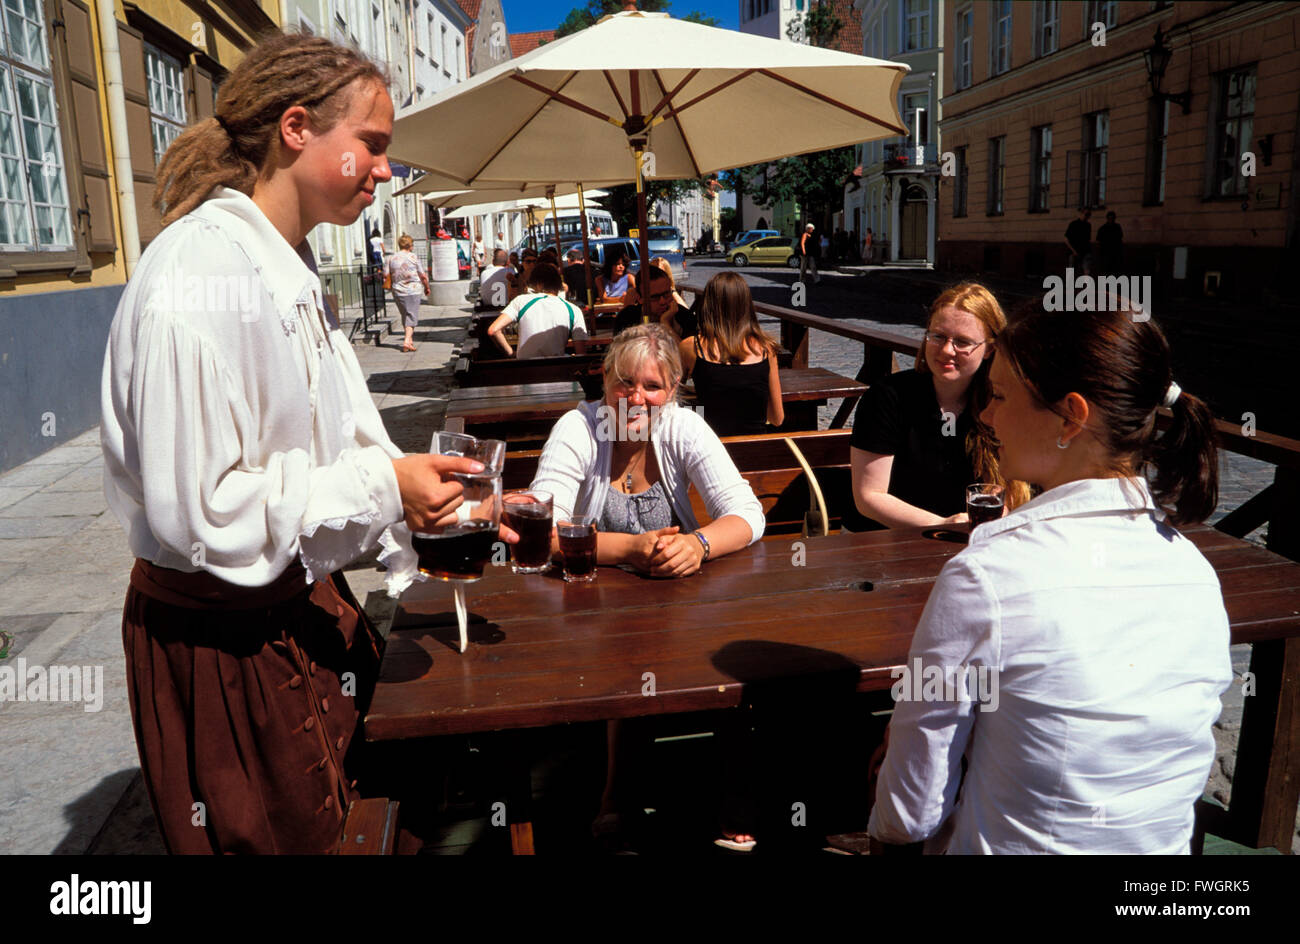 Street cafe in the old town, Tallinn, Estonia, Europe - Stock Image